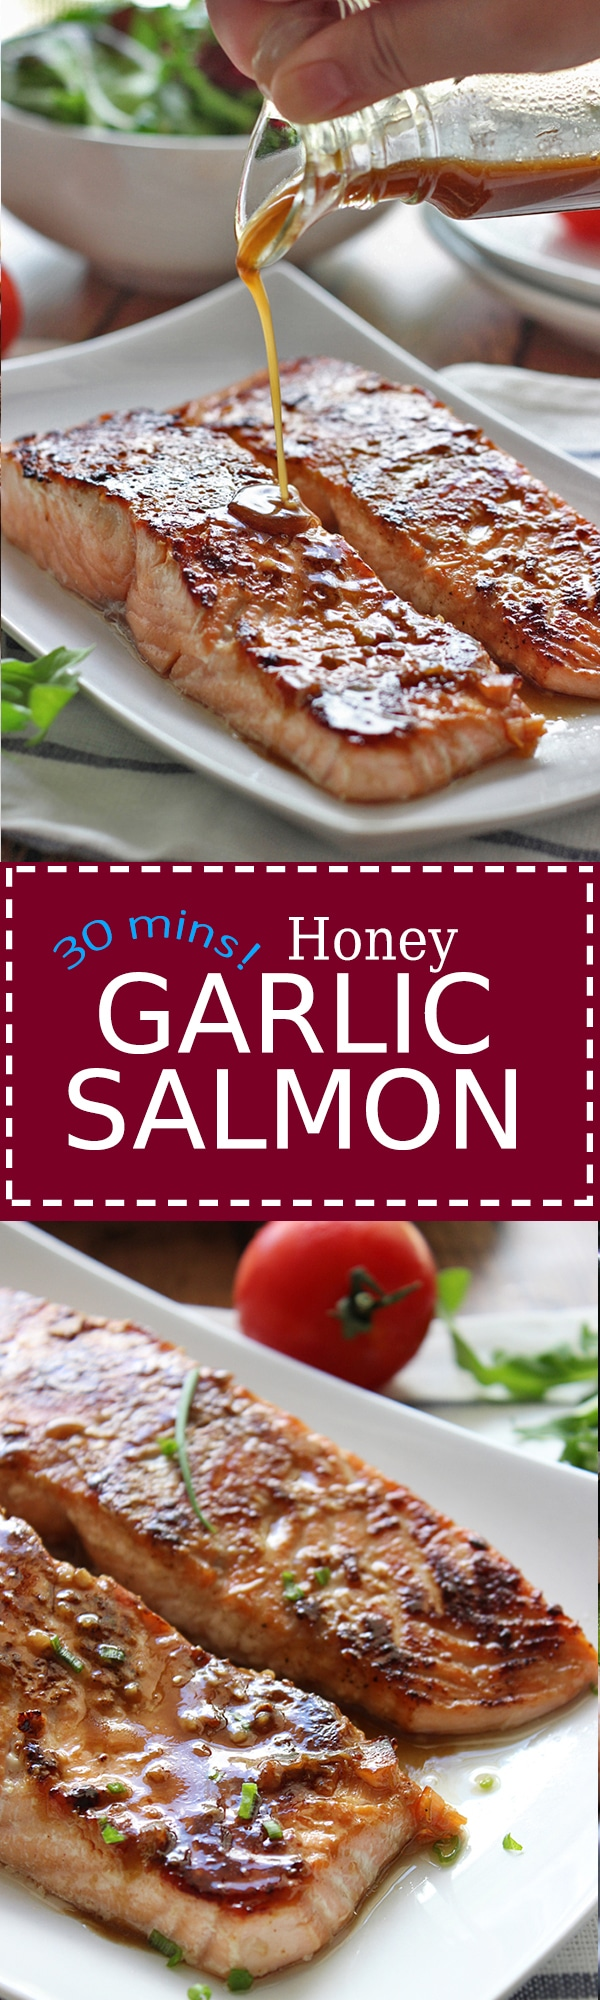 Quick And Easy Honey Garlic Salmon Baked And Ready In Under 30 Minutes  With A